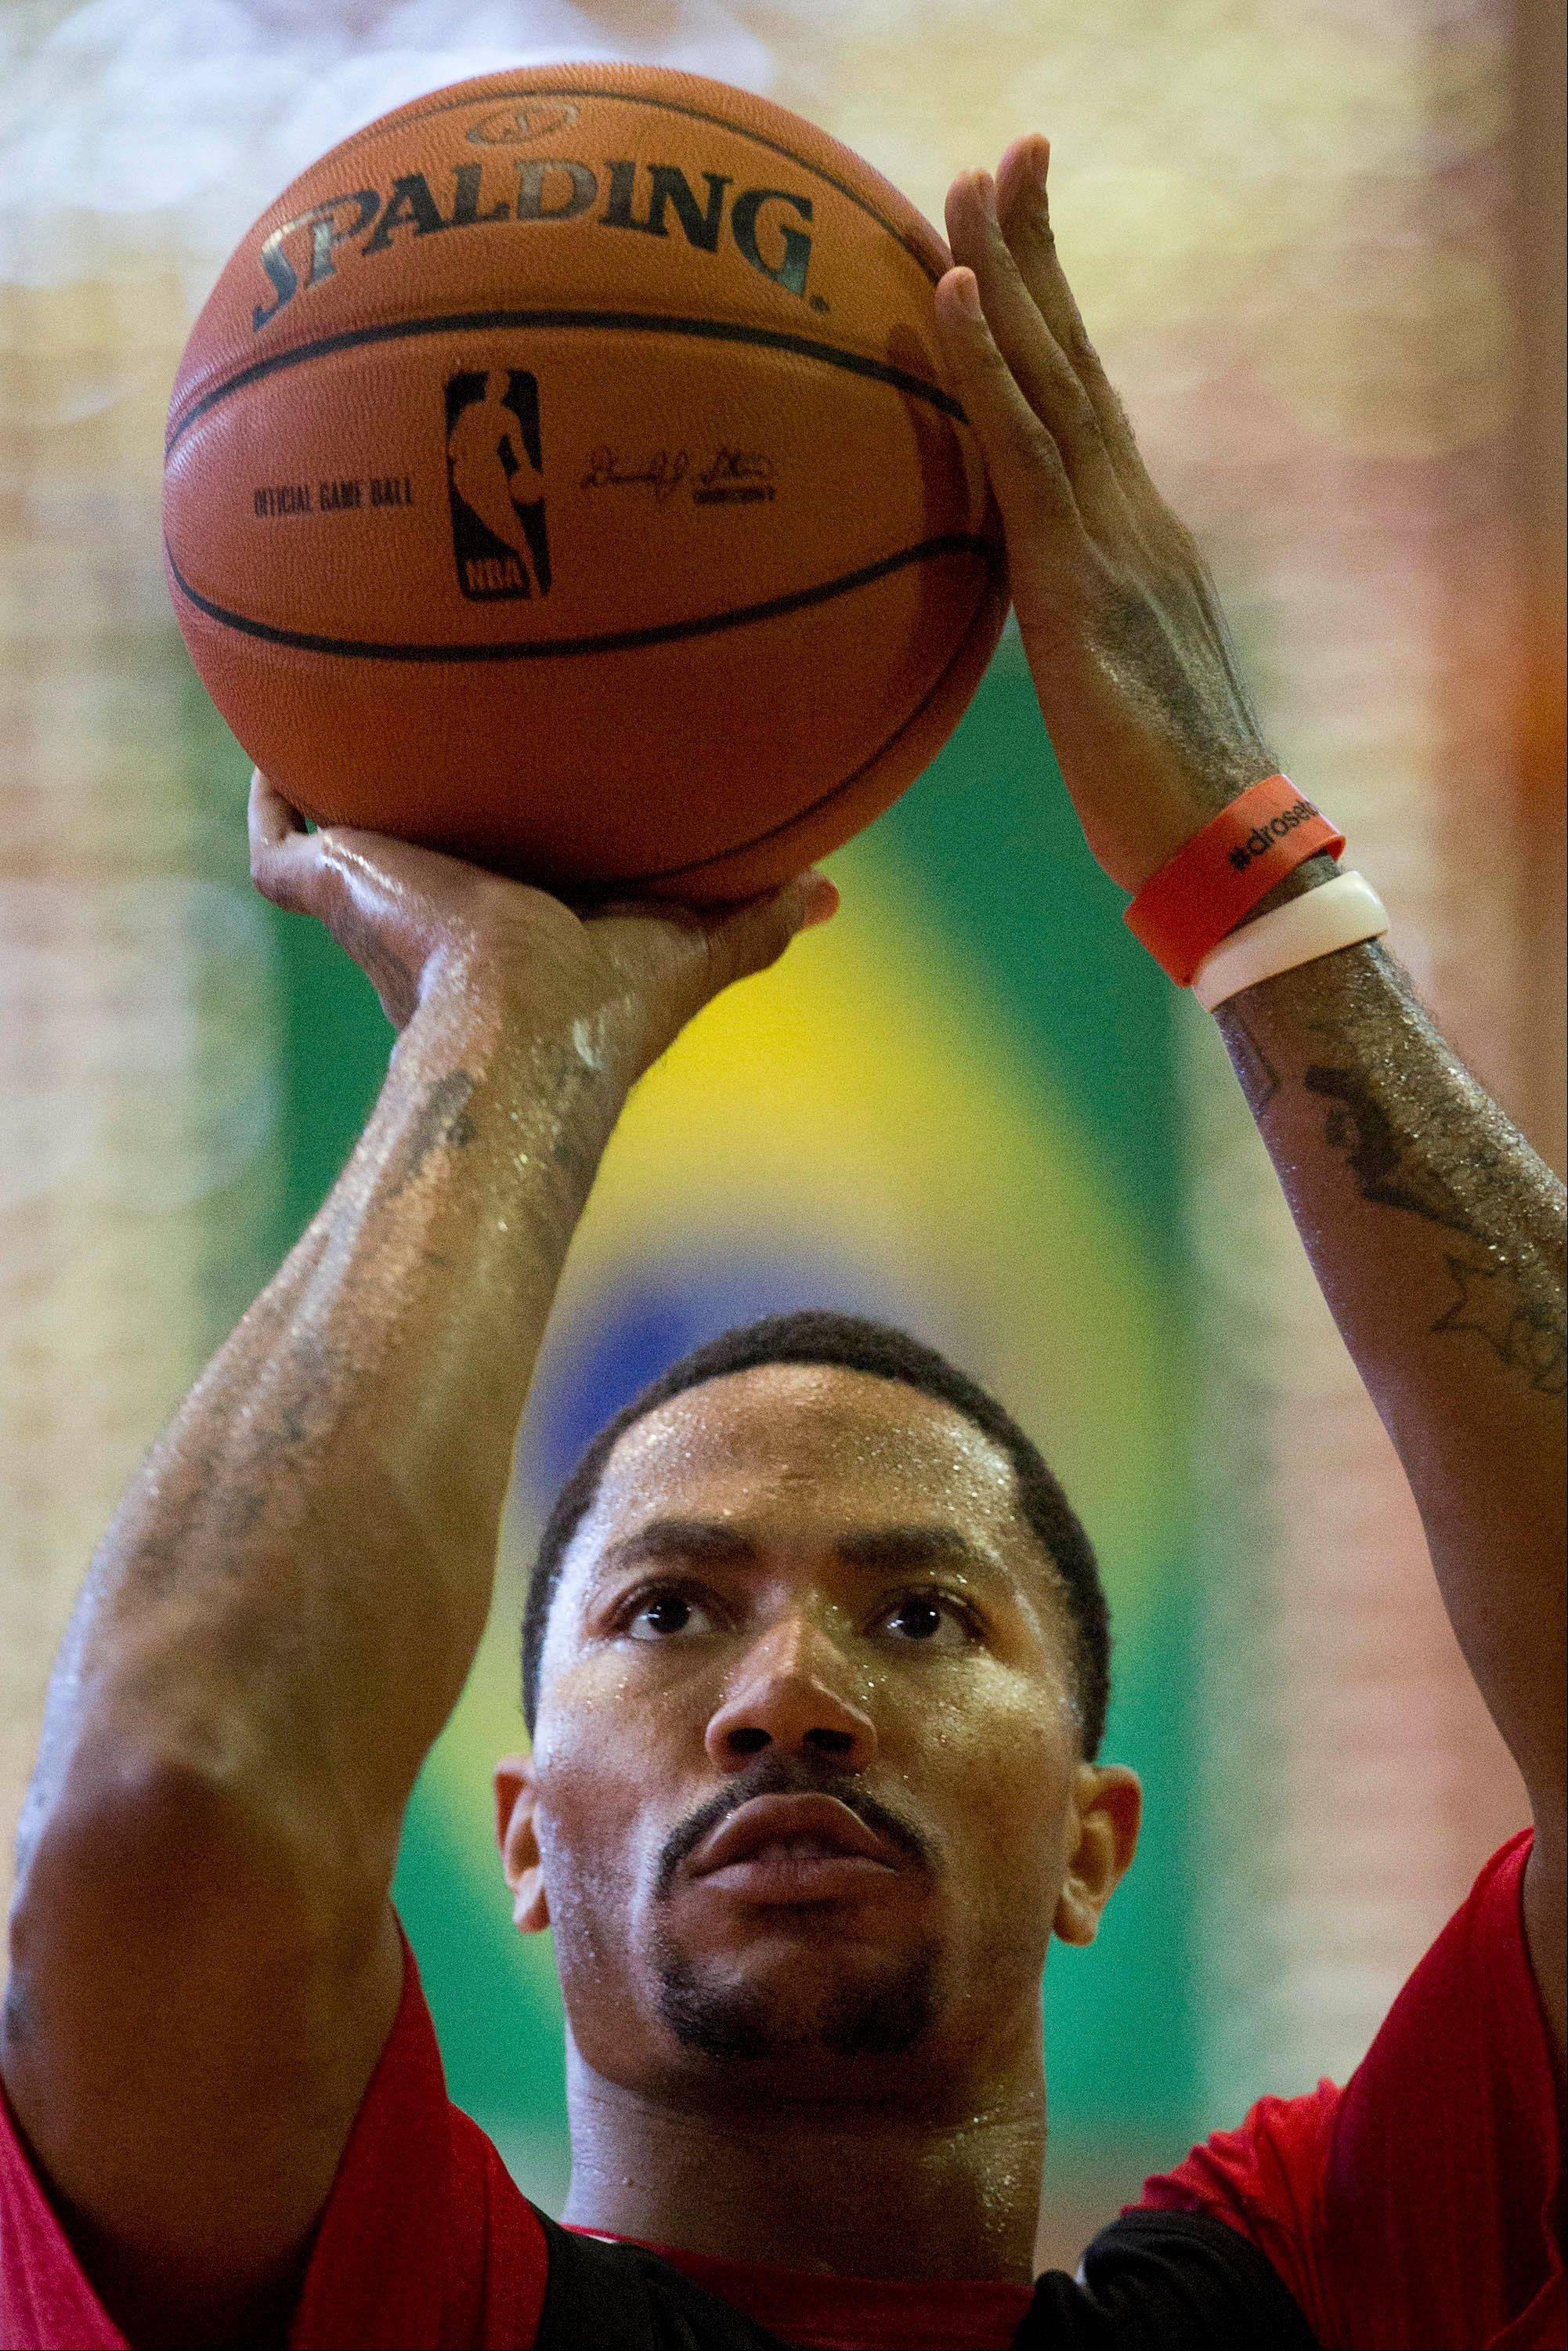 Chicago Bulls' Derrick Rose shoots during a practice session ahead of a NBA Global Games match against Washington Wizards in Rio de Janeiro, Brazil, Wednesday, Oct. 9, 2013. The Chicago Bulls will face Washington Wizards on Oct. 12 in the first-ever NBA game in Brazil.